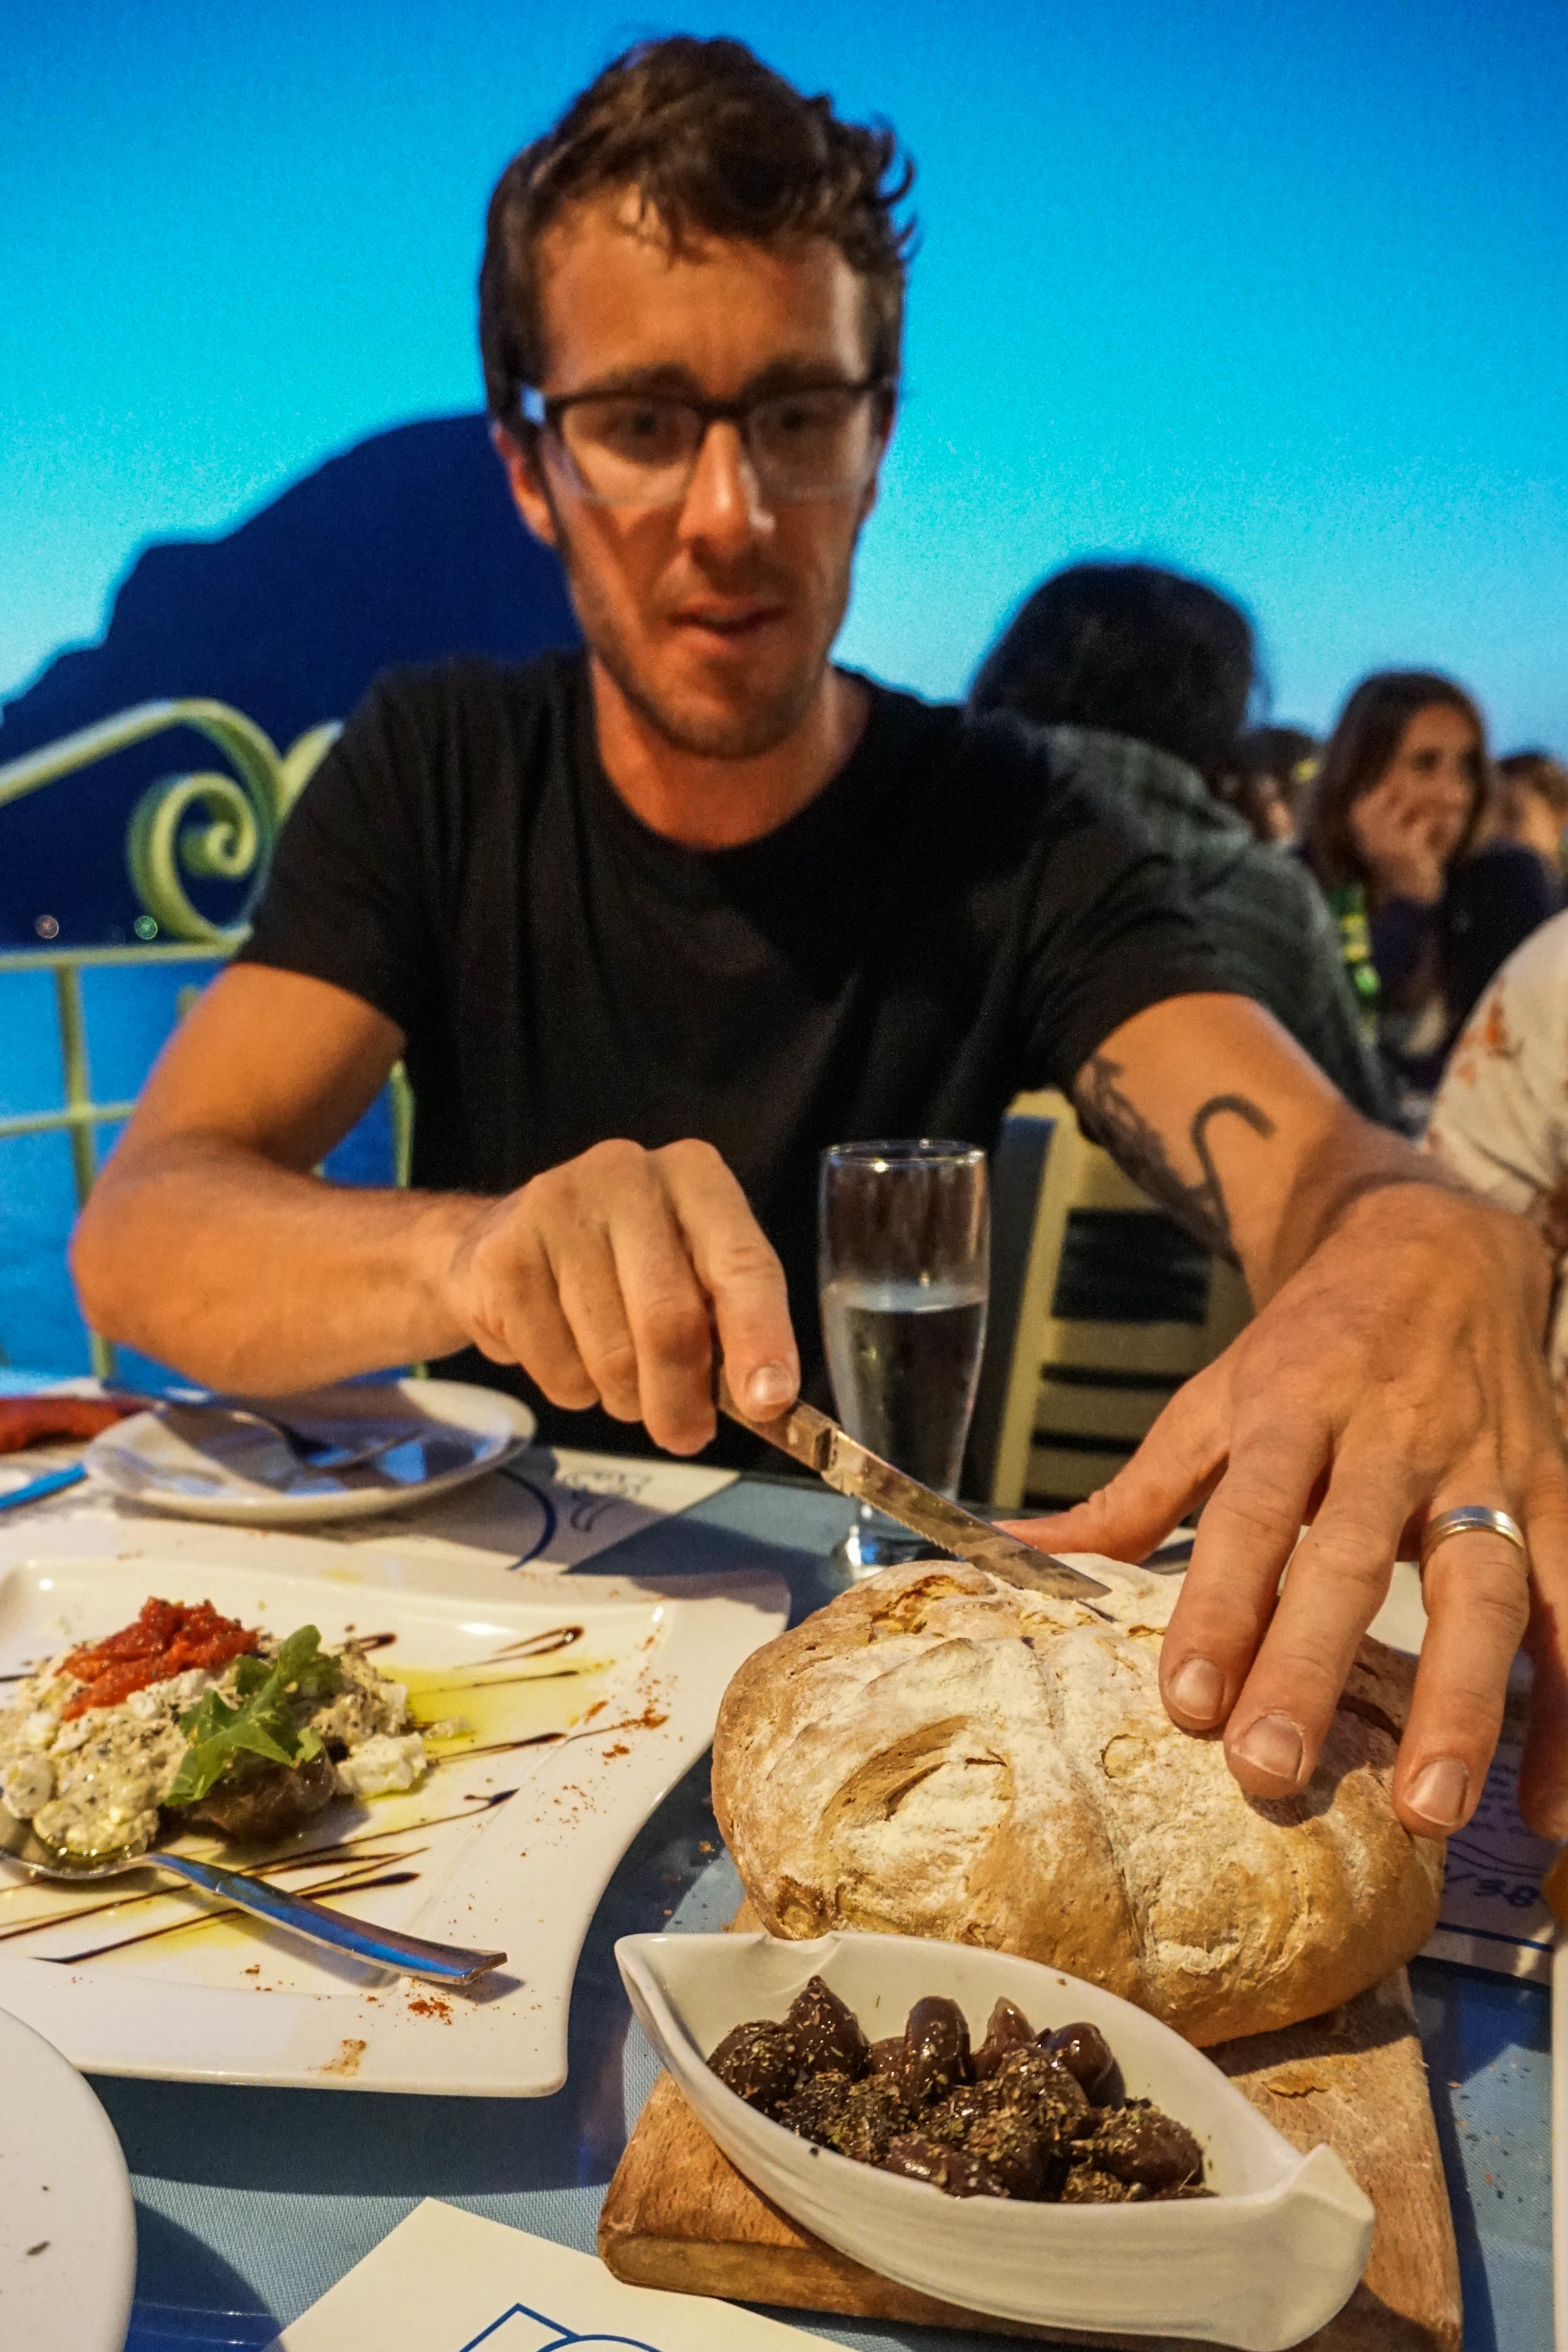 Michael cutting into fresh baked bread at the Aegean